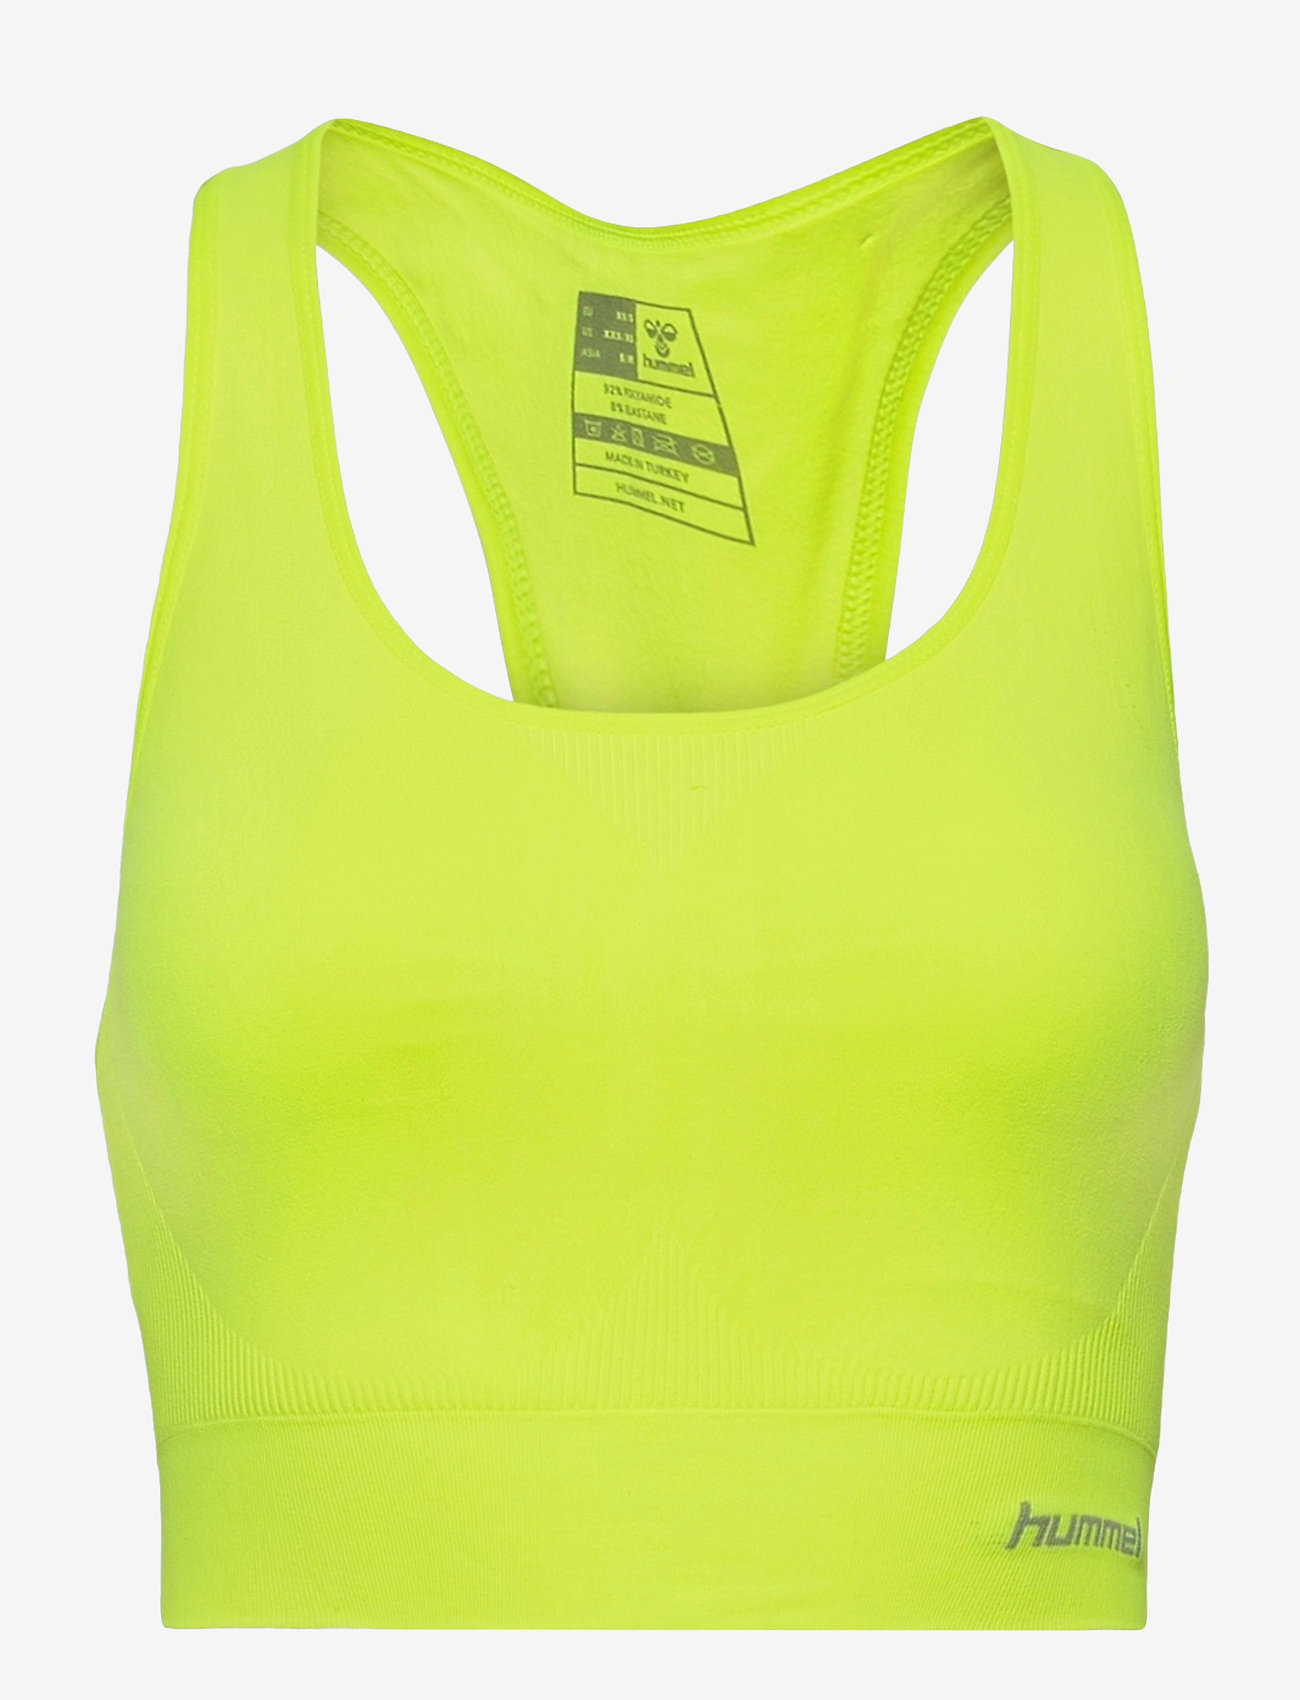 Hummel - SUE SEAMLESS SPORTS TOP - sort bras:high - safety yellow - 0